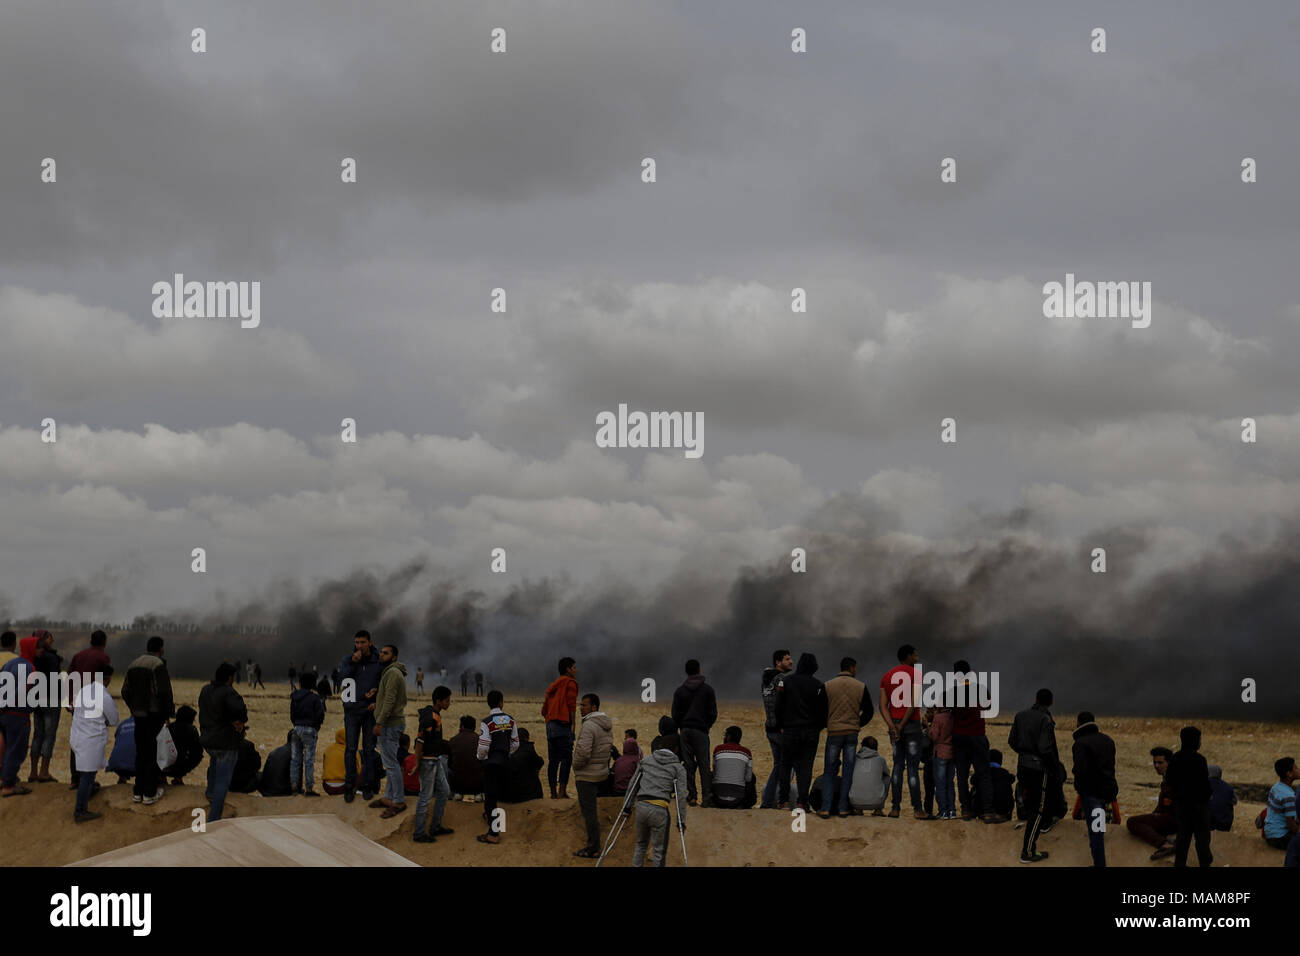 Palestinian protesters watch clouds of smoke as they rise from burnt tyres, to distract Israeli troops, during clashes along the borders between Israel and Gaza, east of Khan Yunis, southern Gaza Strip, 03 April 2018. Photo: Mohammed Talatene/dpa Stock Photo